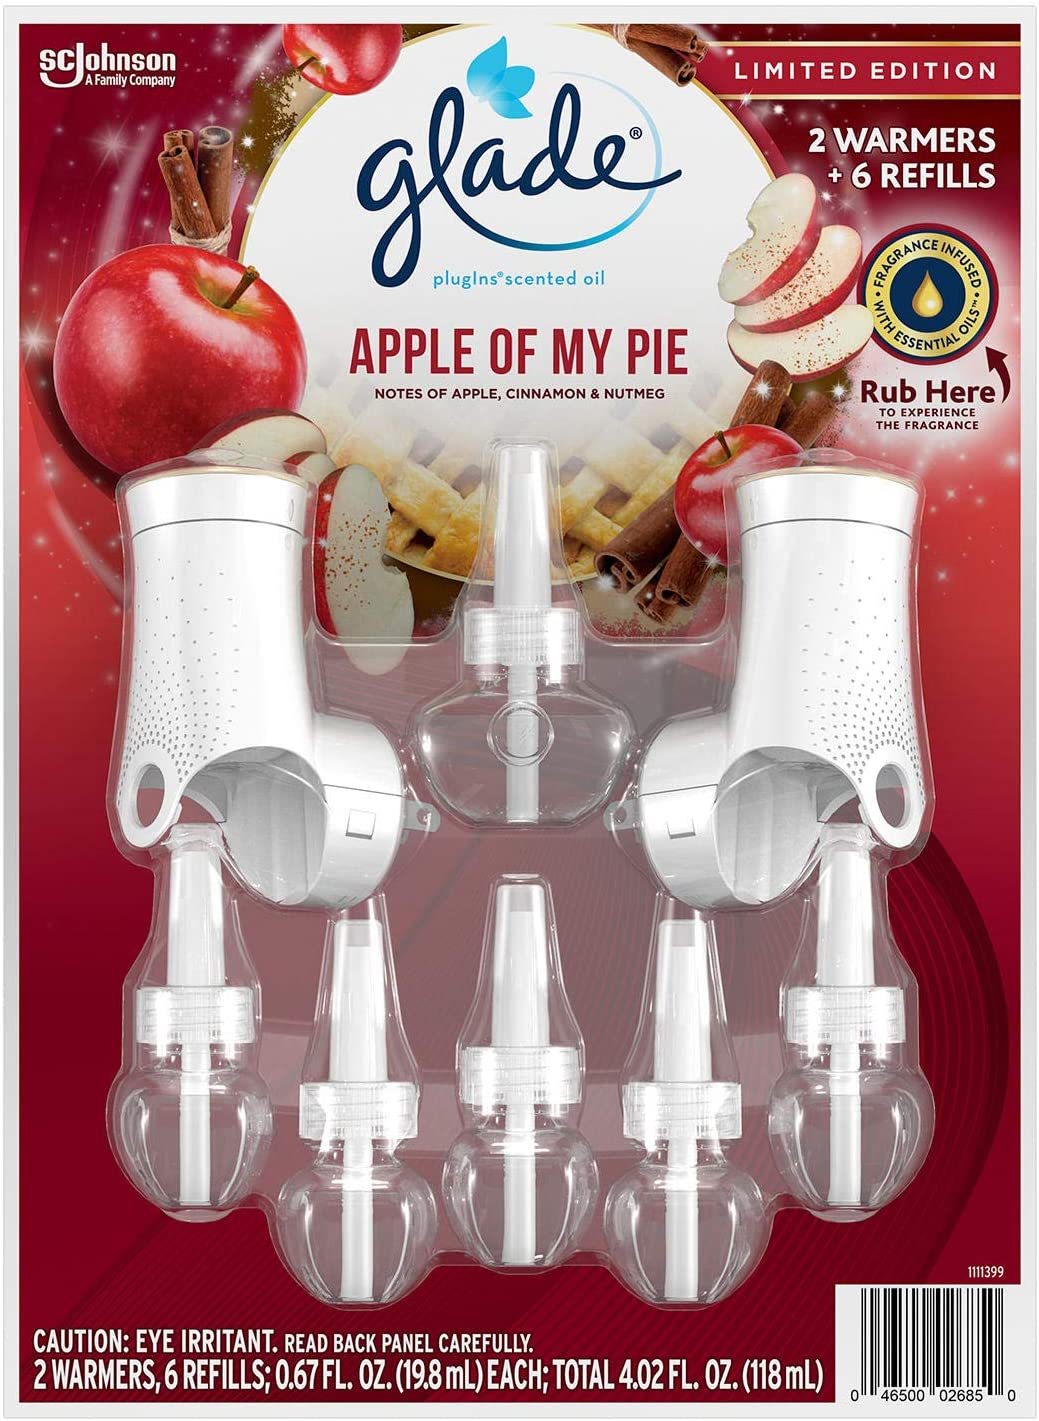 Glade PlugIns 2 Warmers + 6 Refills Holiday (Apple of My Pie)